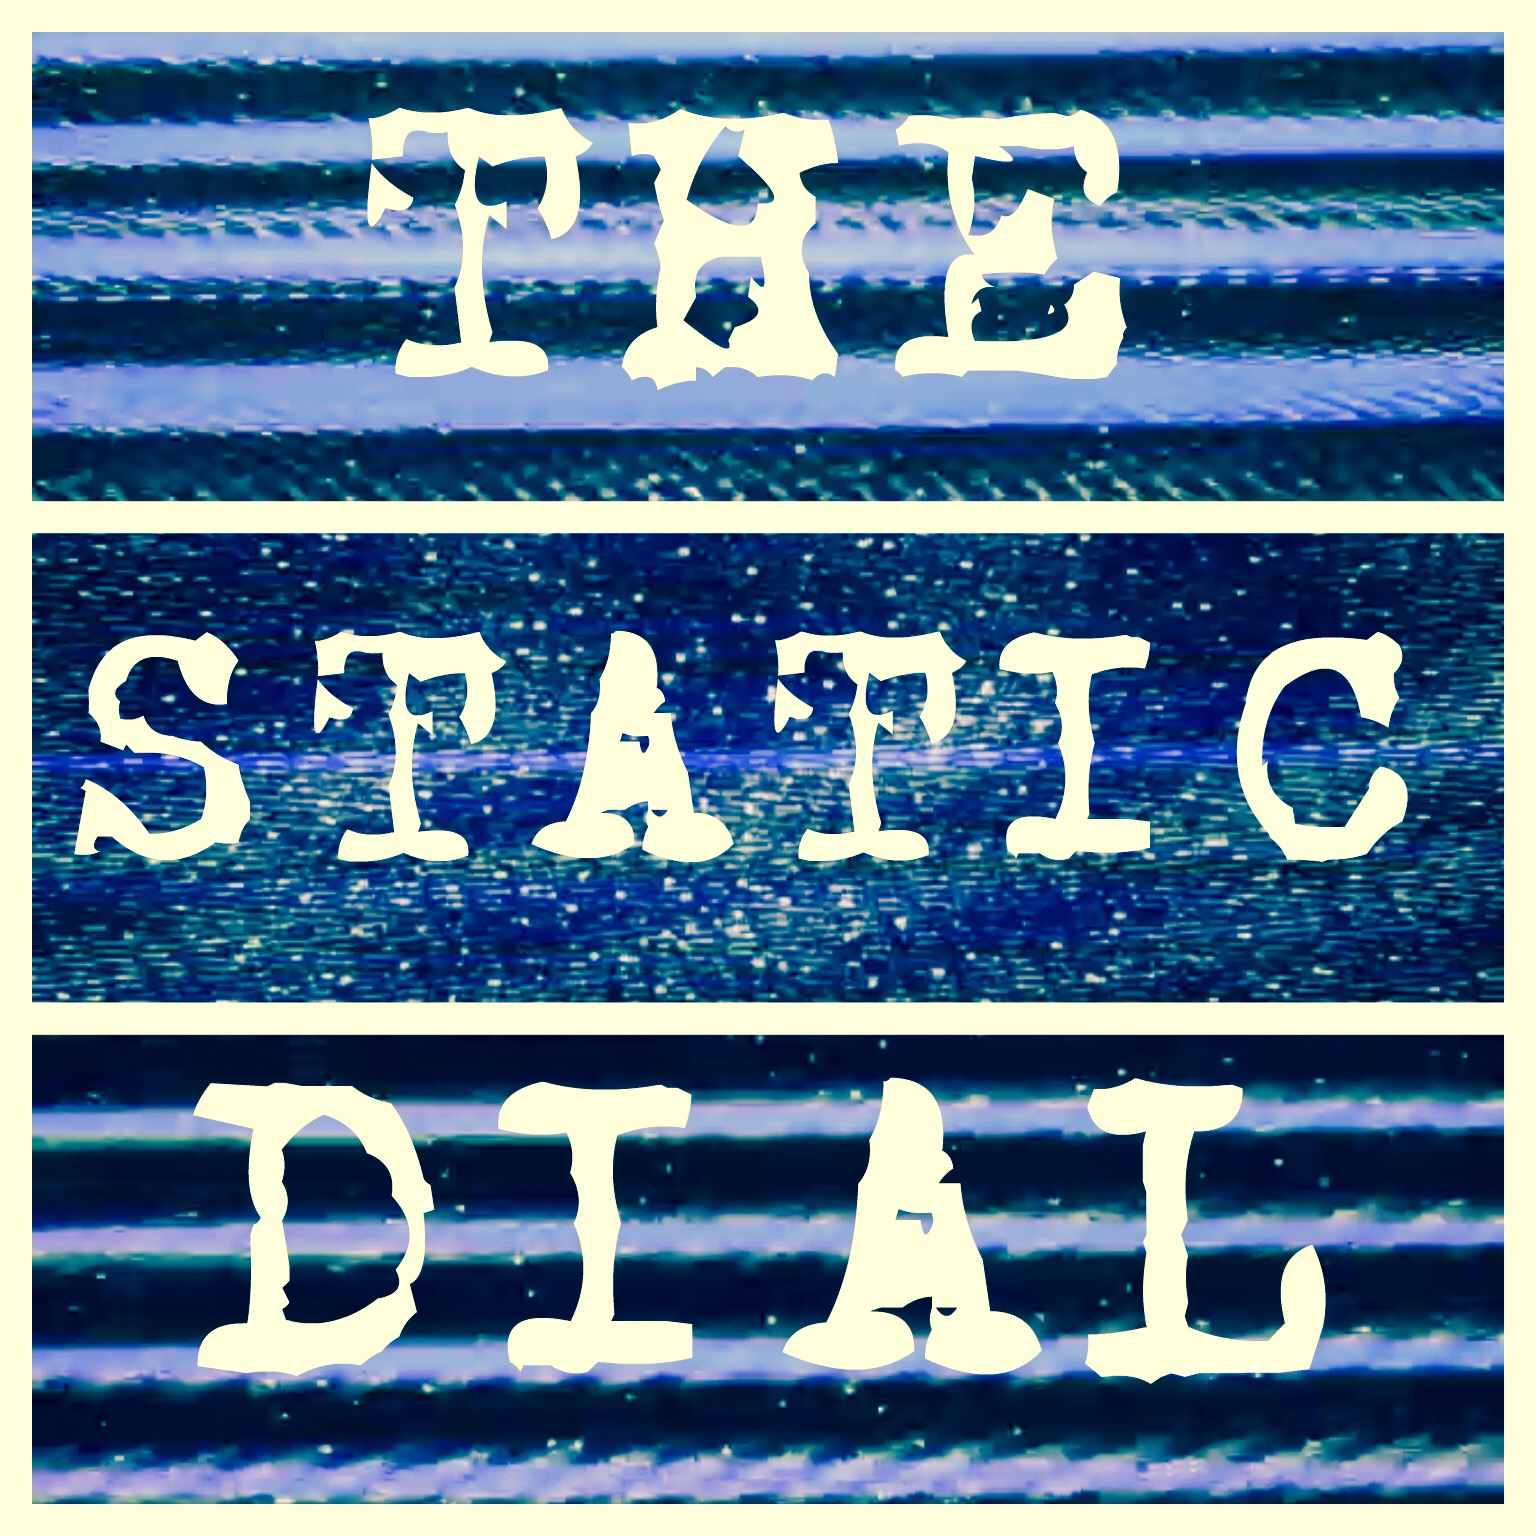 The Static Dial logo